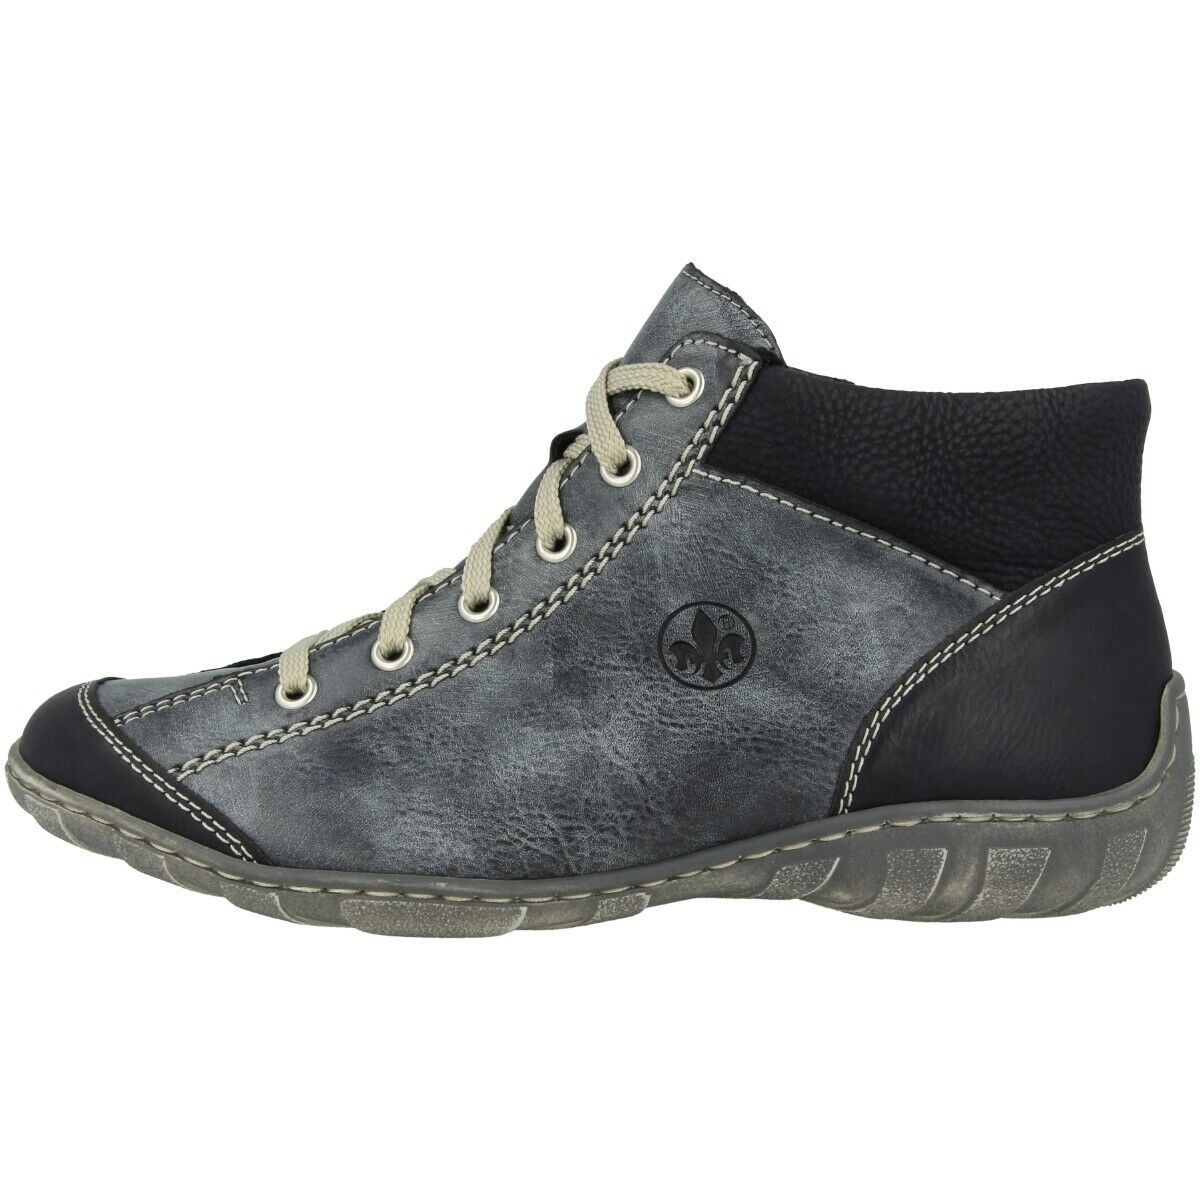 Rieker eagle-serbia-wildebuk shoes antistress high top sneaker boots m3731-14